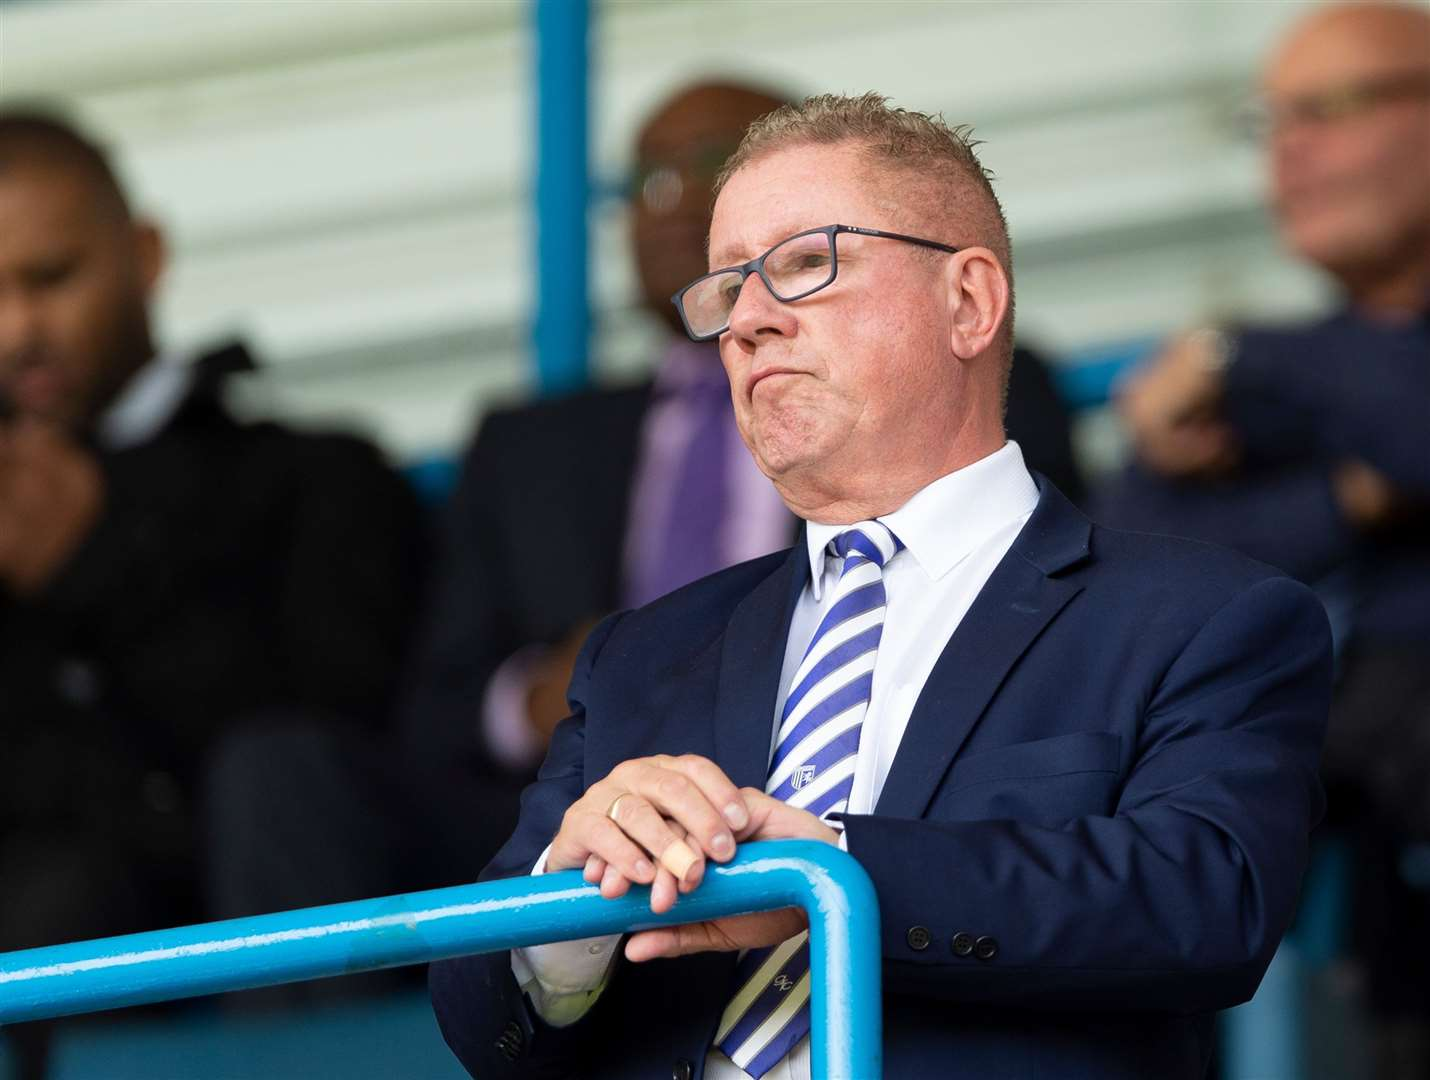 Gillingham chairman Paul Scally believes Premier League clubs could help struggling teams in the EFL